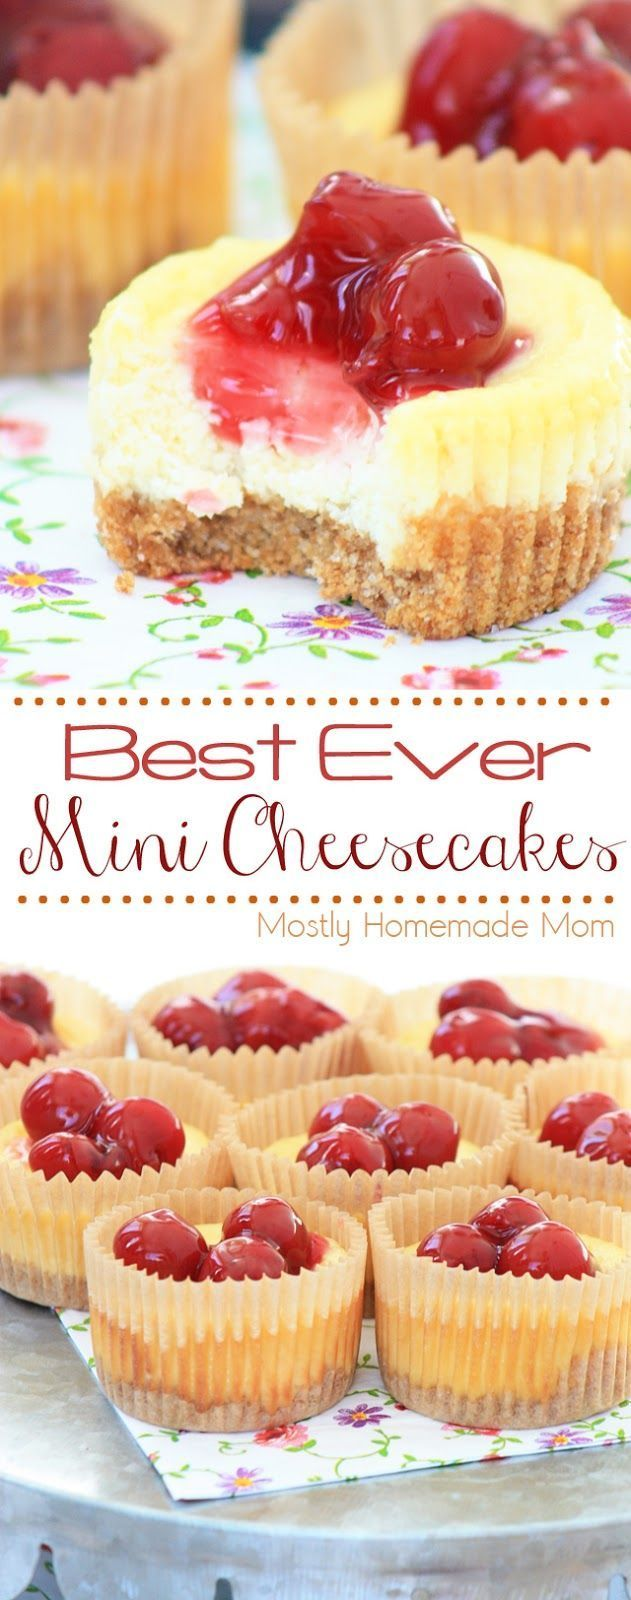 THE BEST recipe ever for Mini Cheesecakes! My kids beg me to make these again an THE BEST recipe ever for Mini Cheesecakes! My kids beg me to make these again an... -